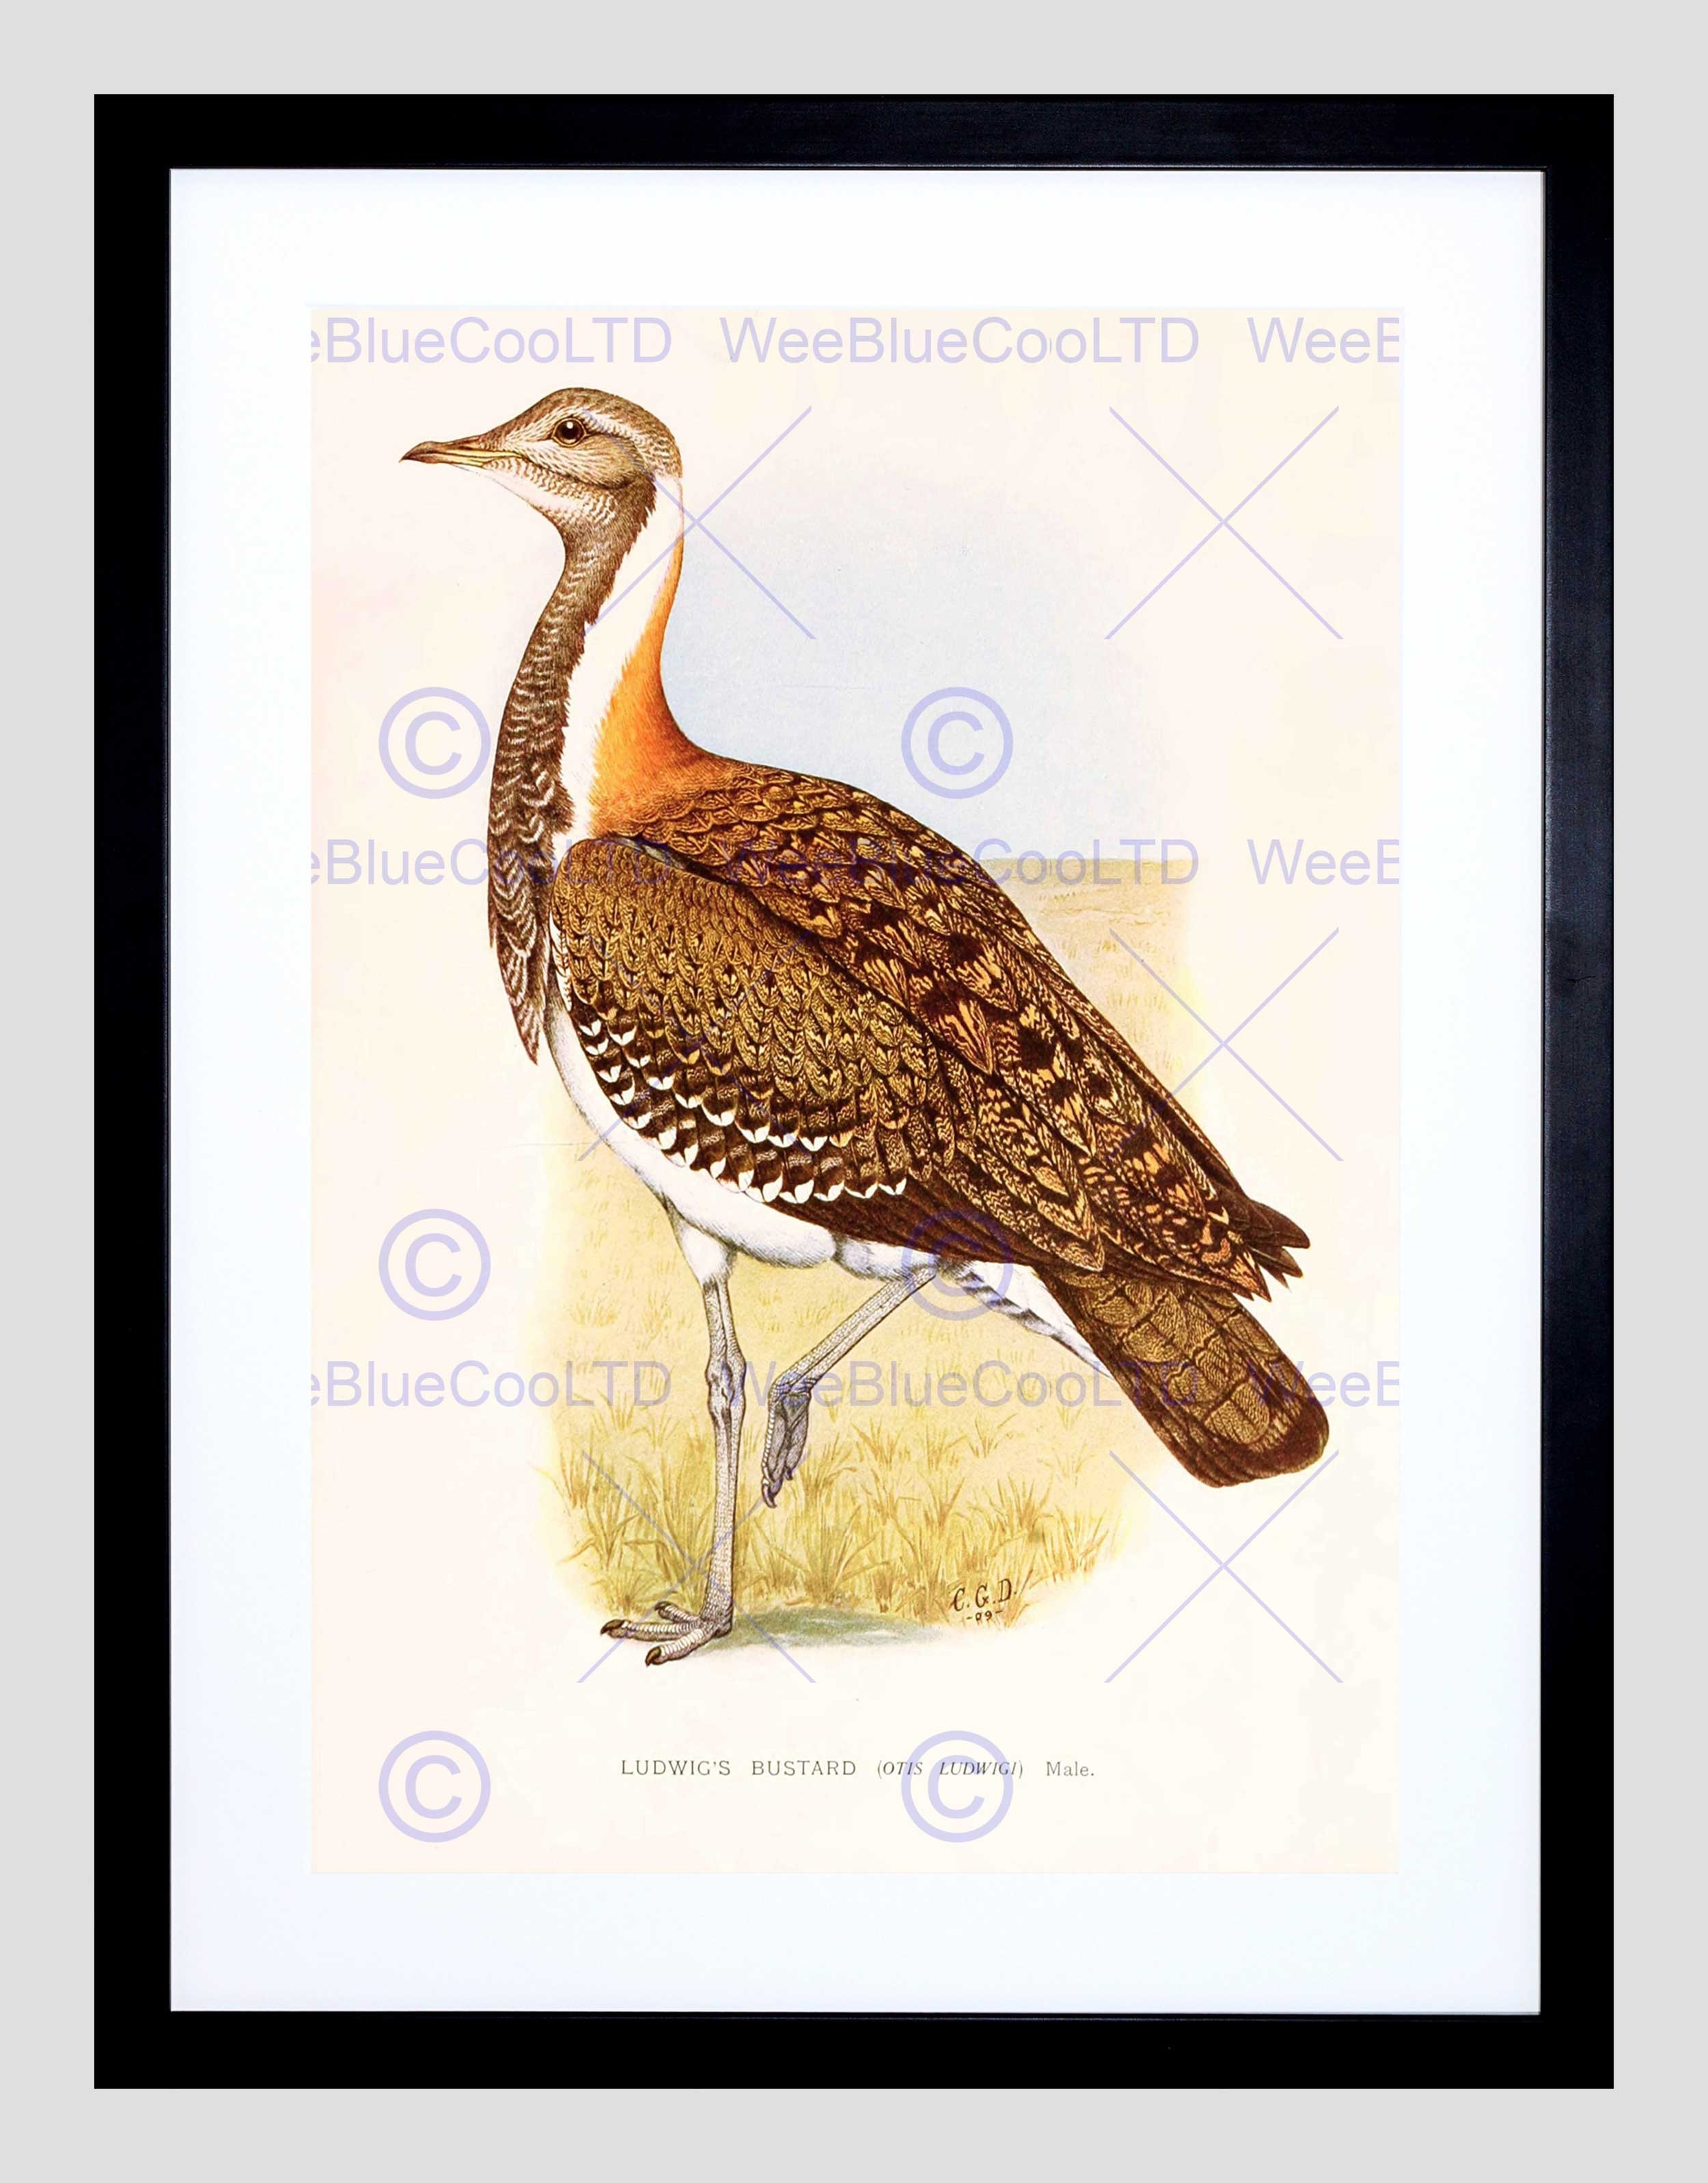 Painting Birds South Africa Horsbrugh Ludwigs Bustard Framed Art Throughout 2018 South Africa Framed Art Prints (Gallery 5 of 15)